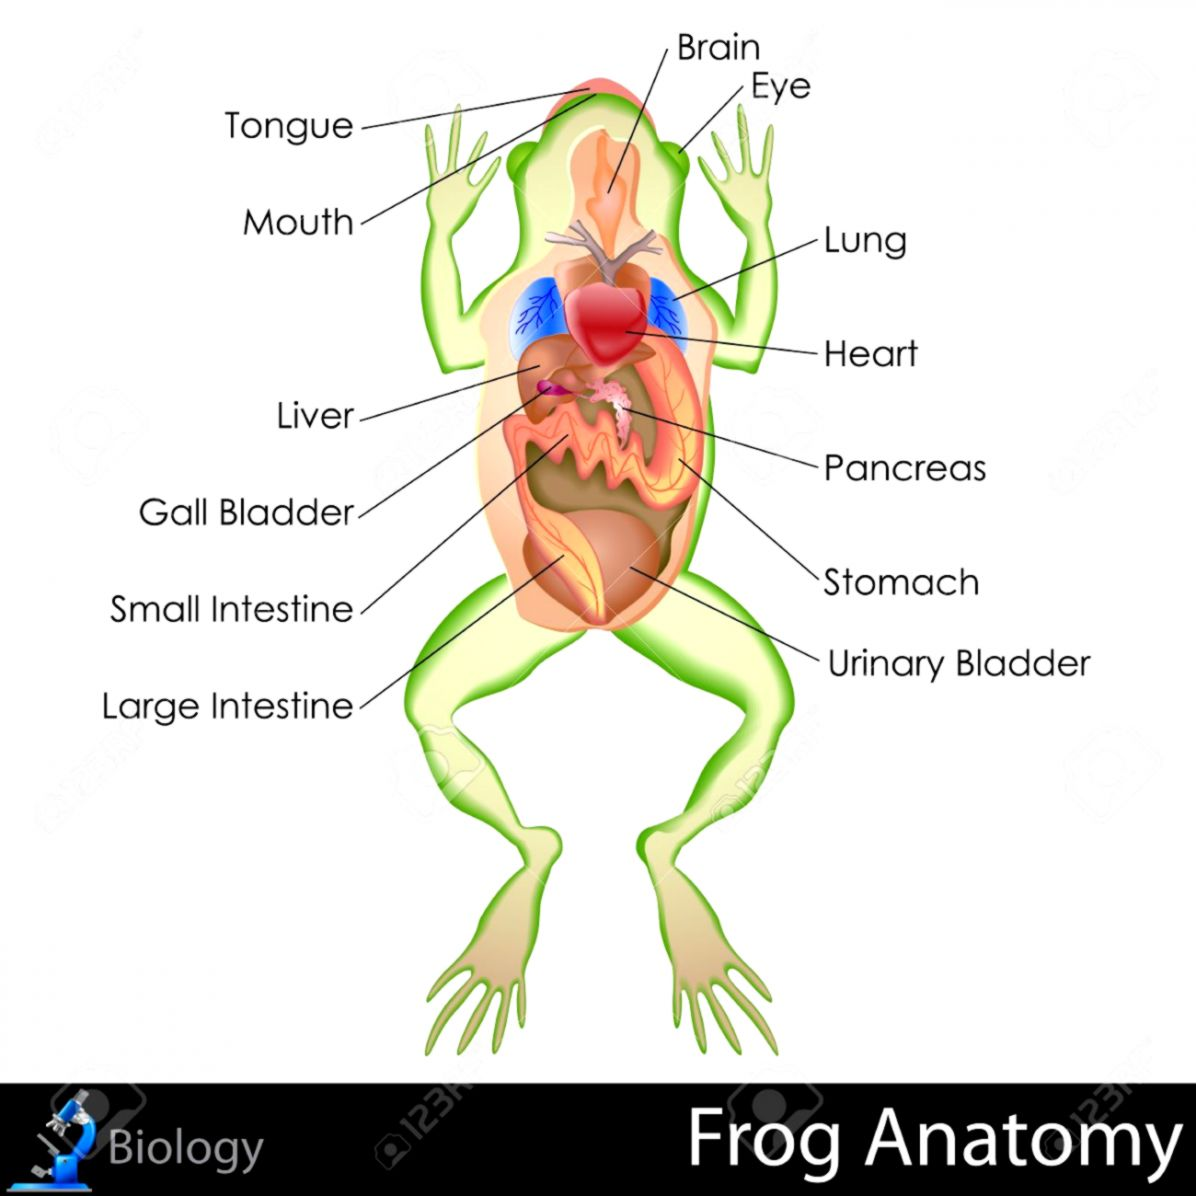 Frog Anatomy Wallpapers History